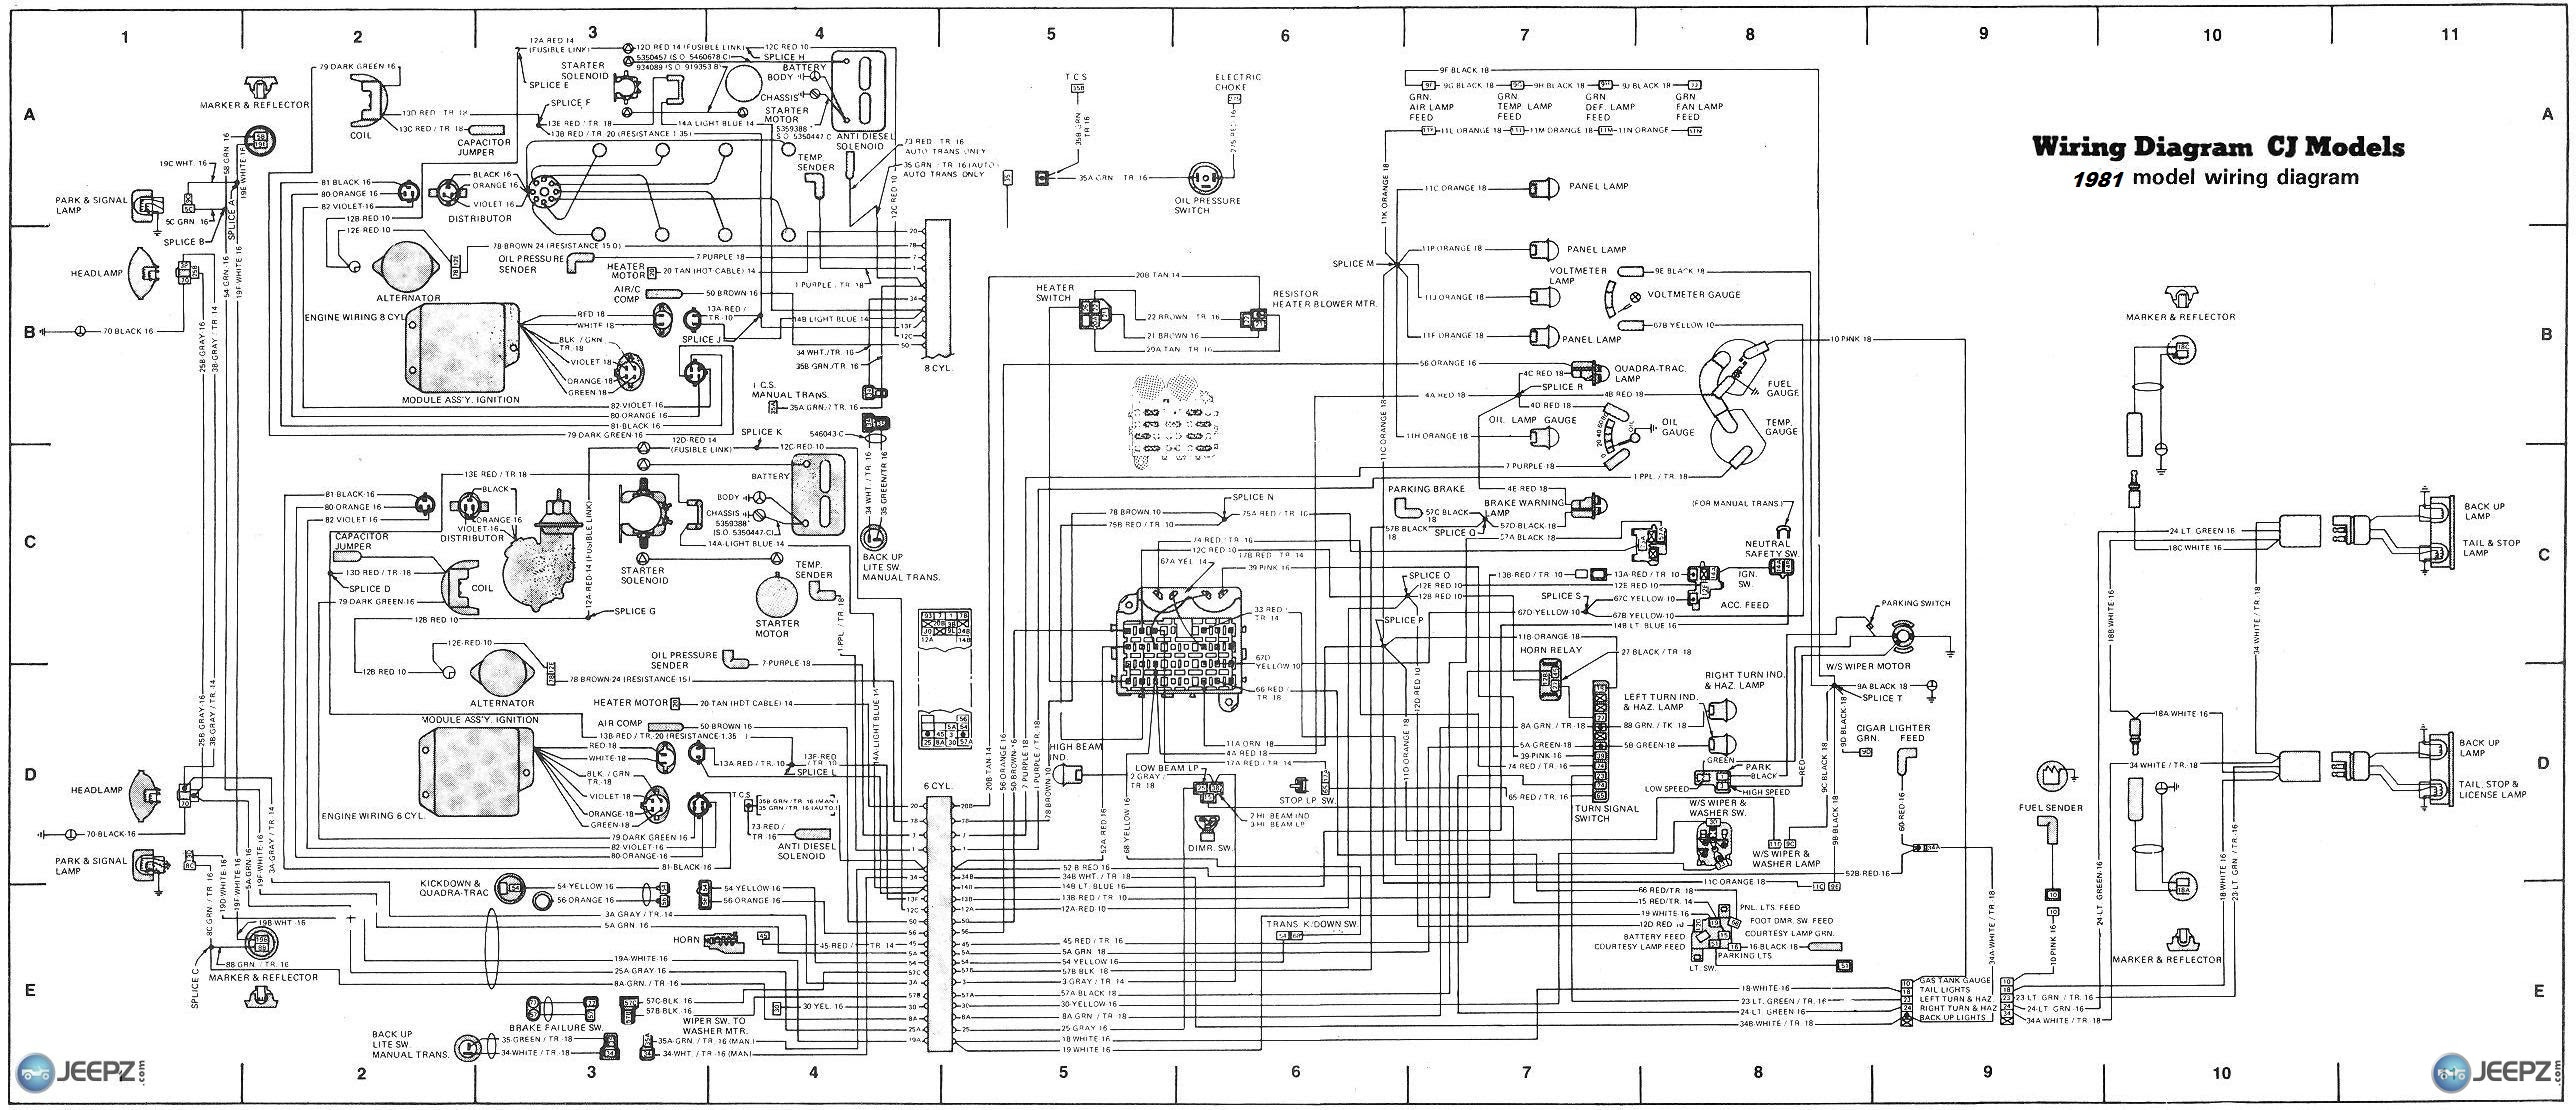 Jeep Cj7 Engine Wiring Wiring Diagram Provider Provider Frankmotors Es